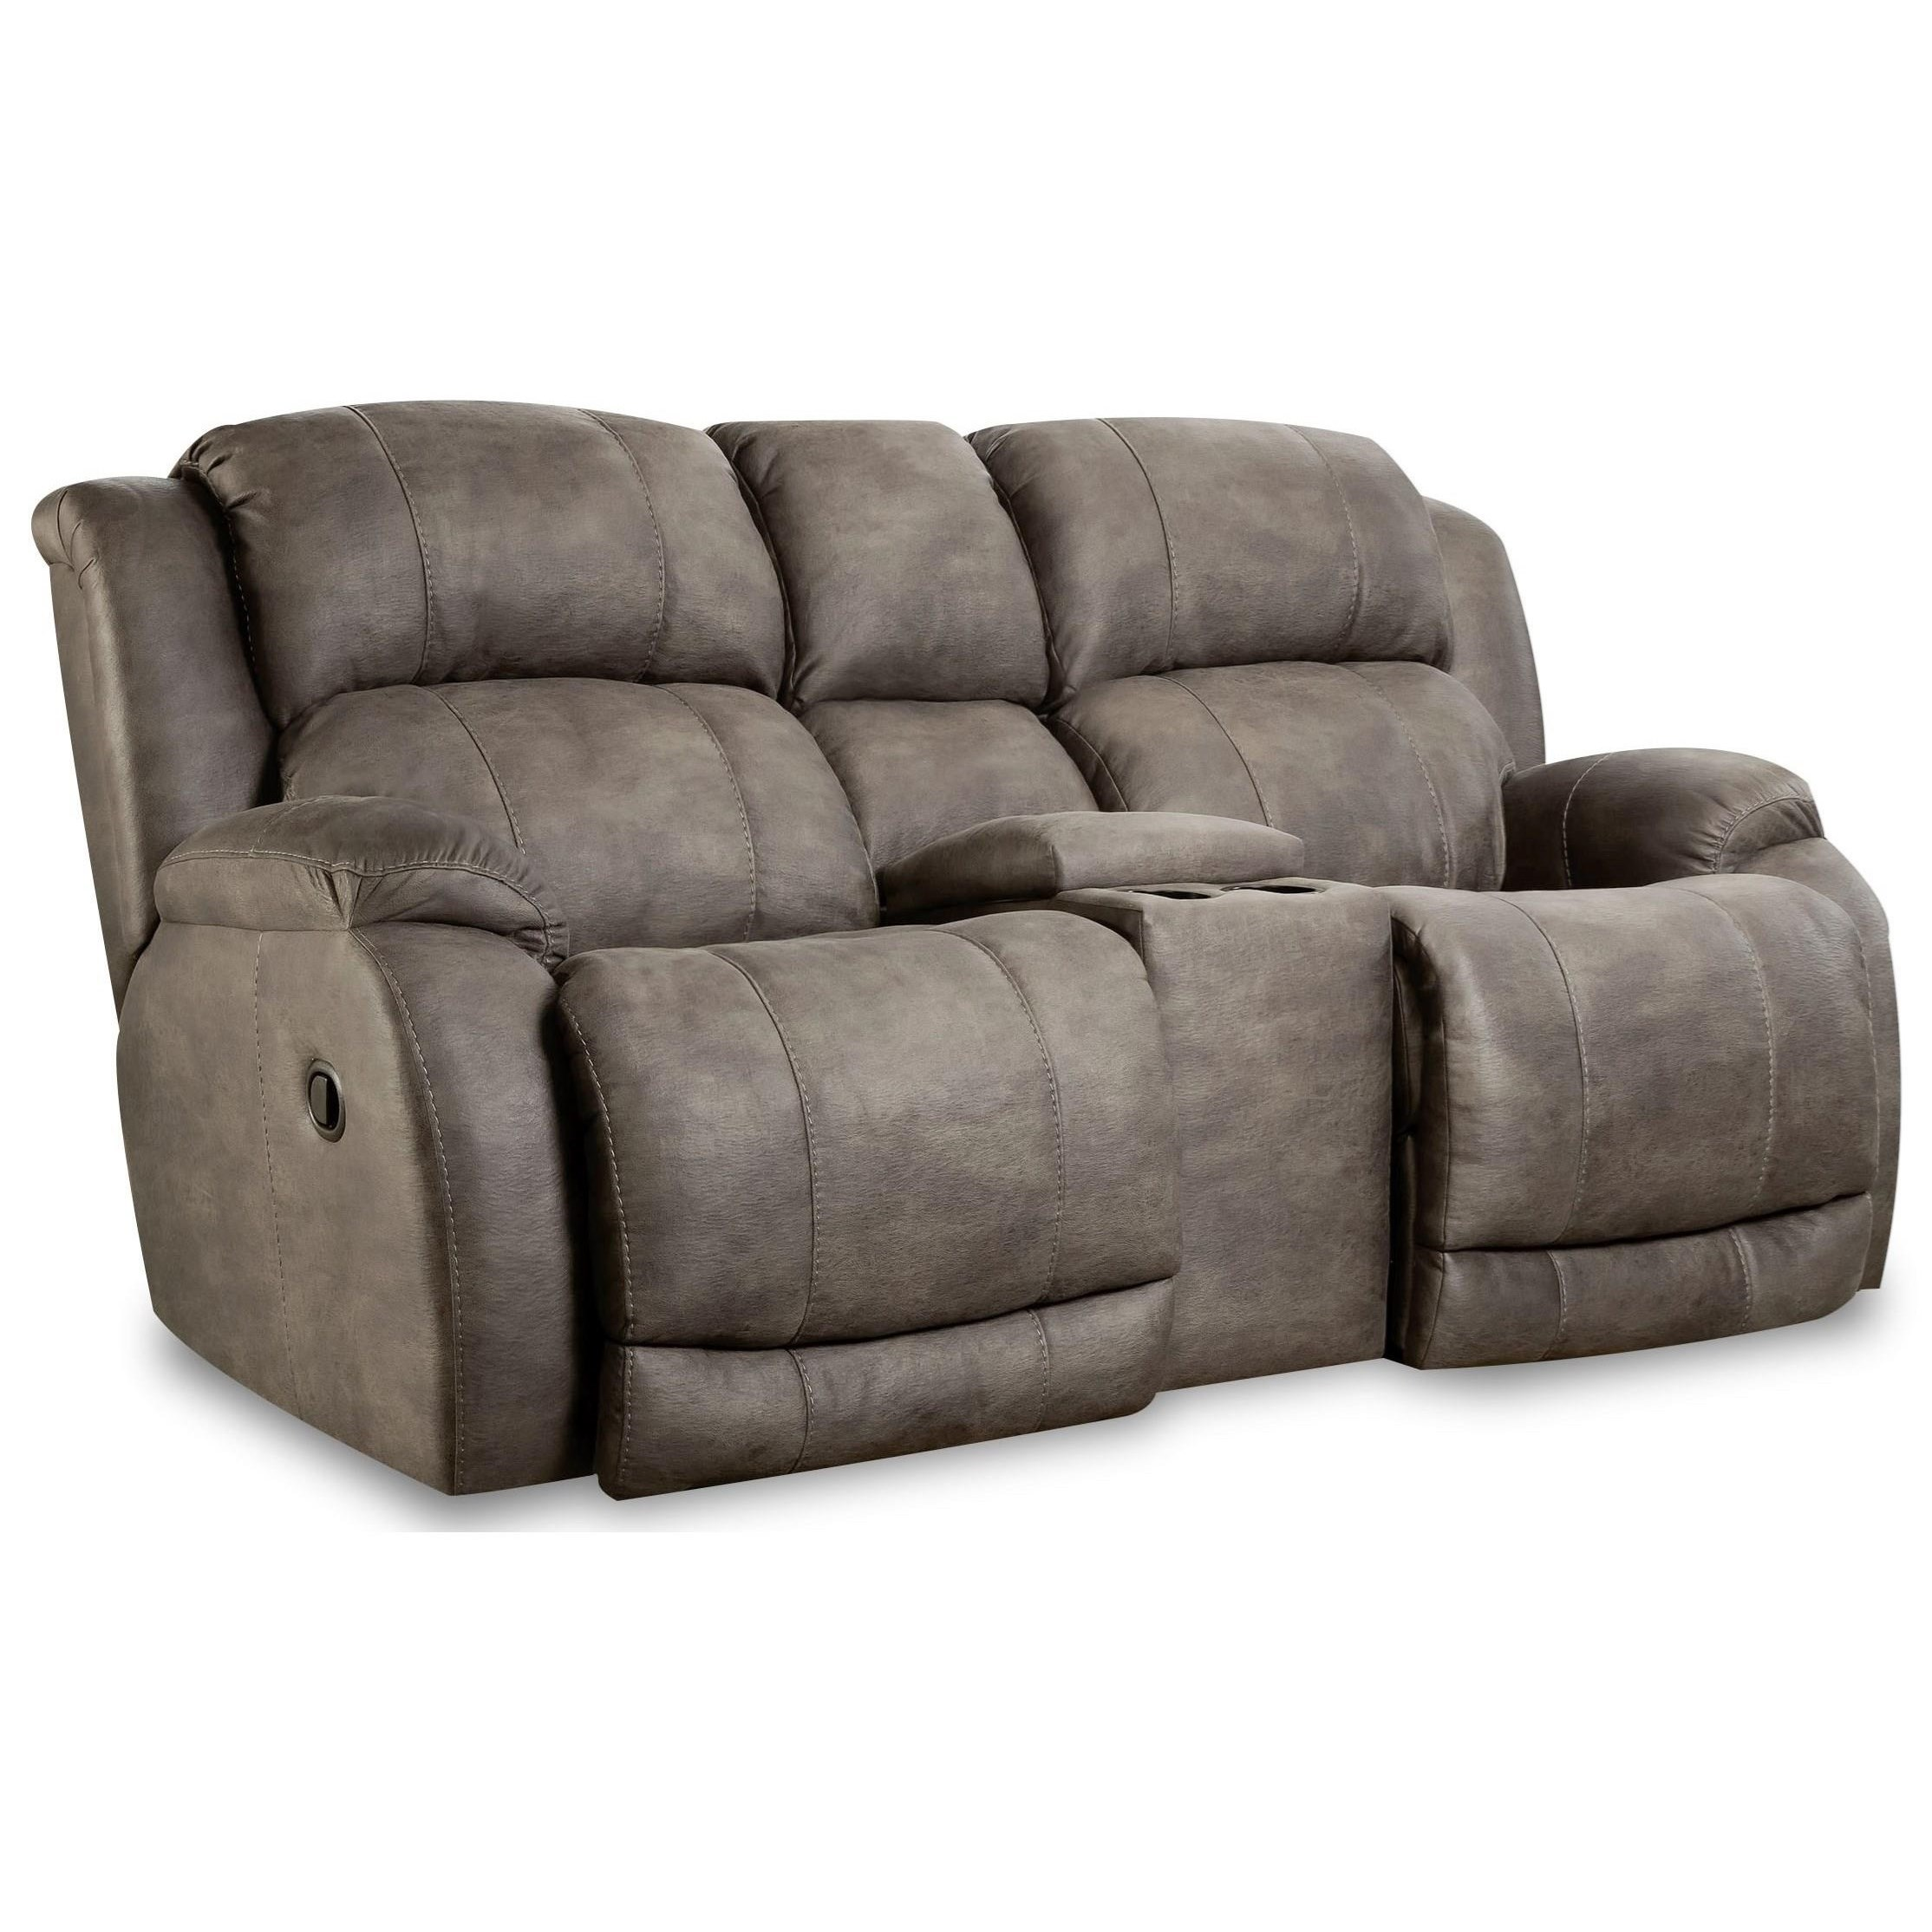 Denali Reclining Console Loveseat by HomeStretch at Turk Furniture